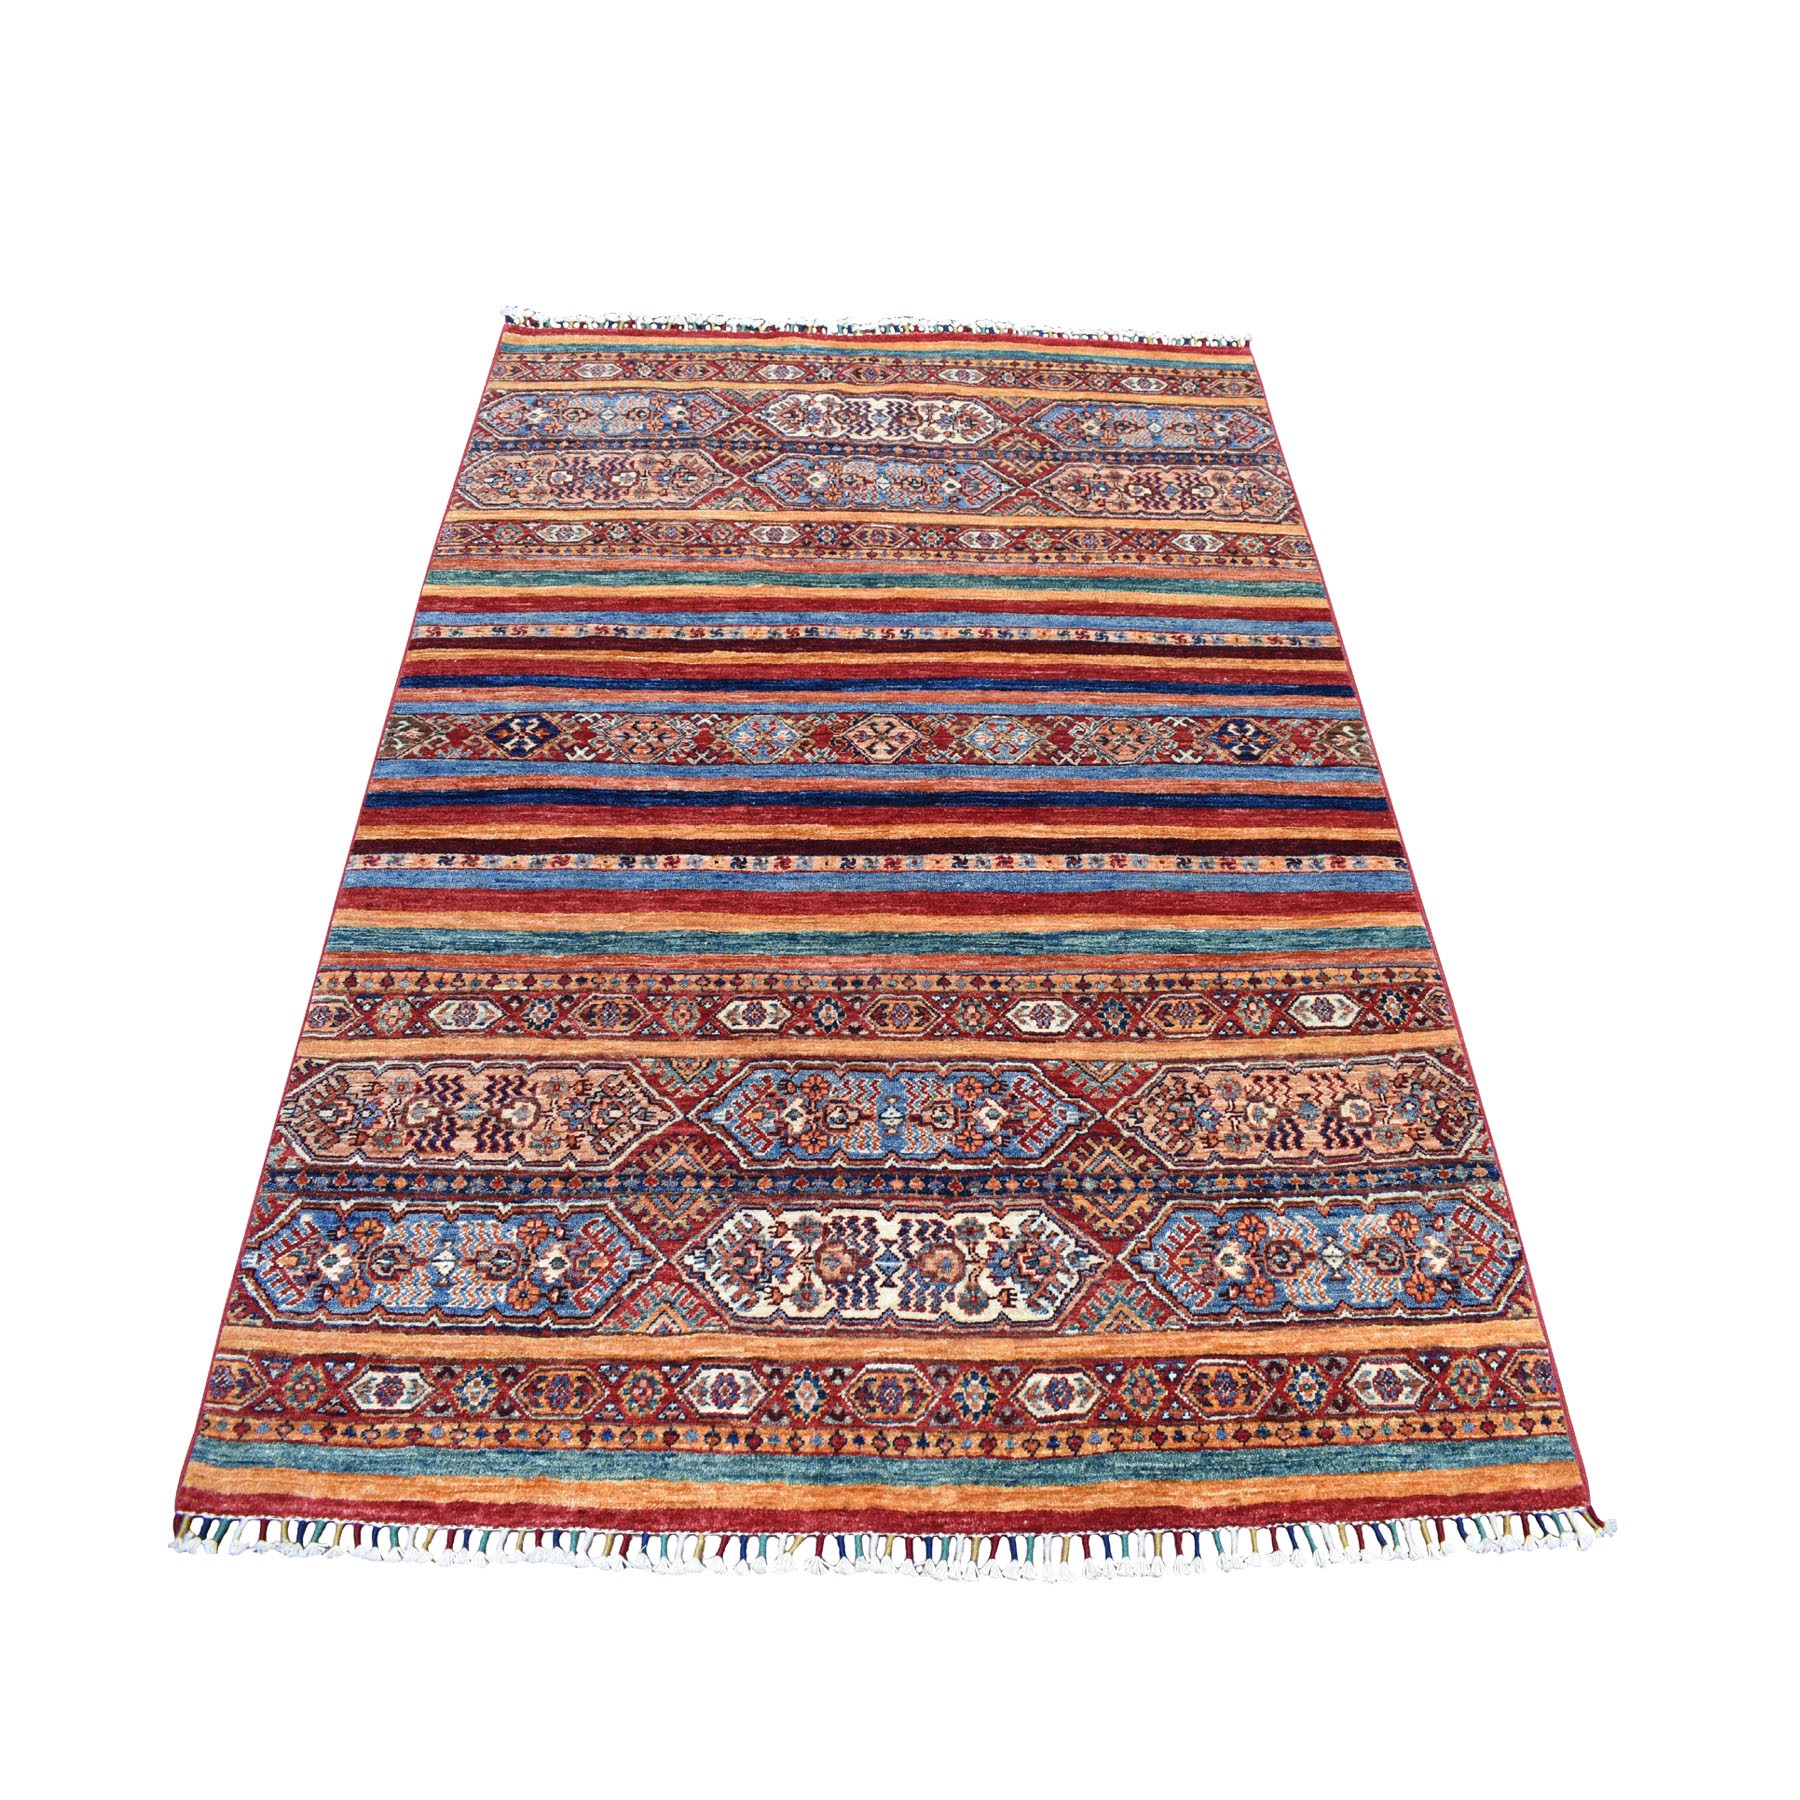 Caucasian Collection Hand Knotted Multicolored Rug No: 01104522